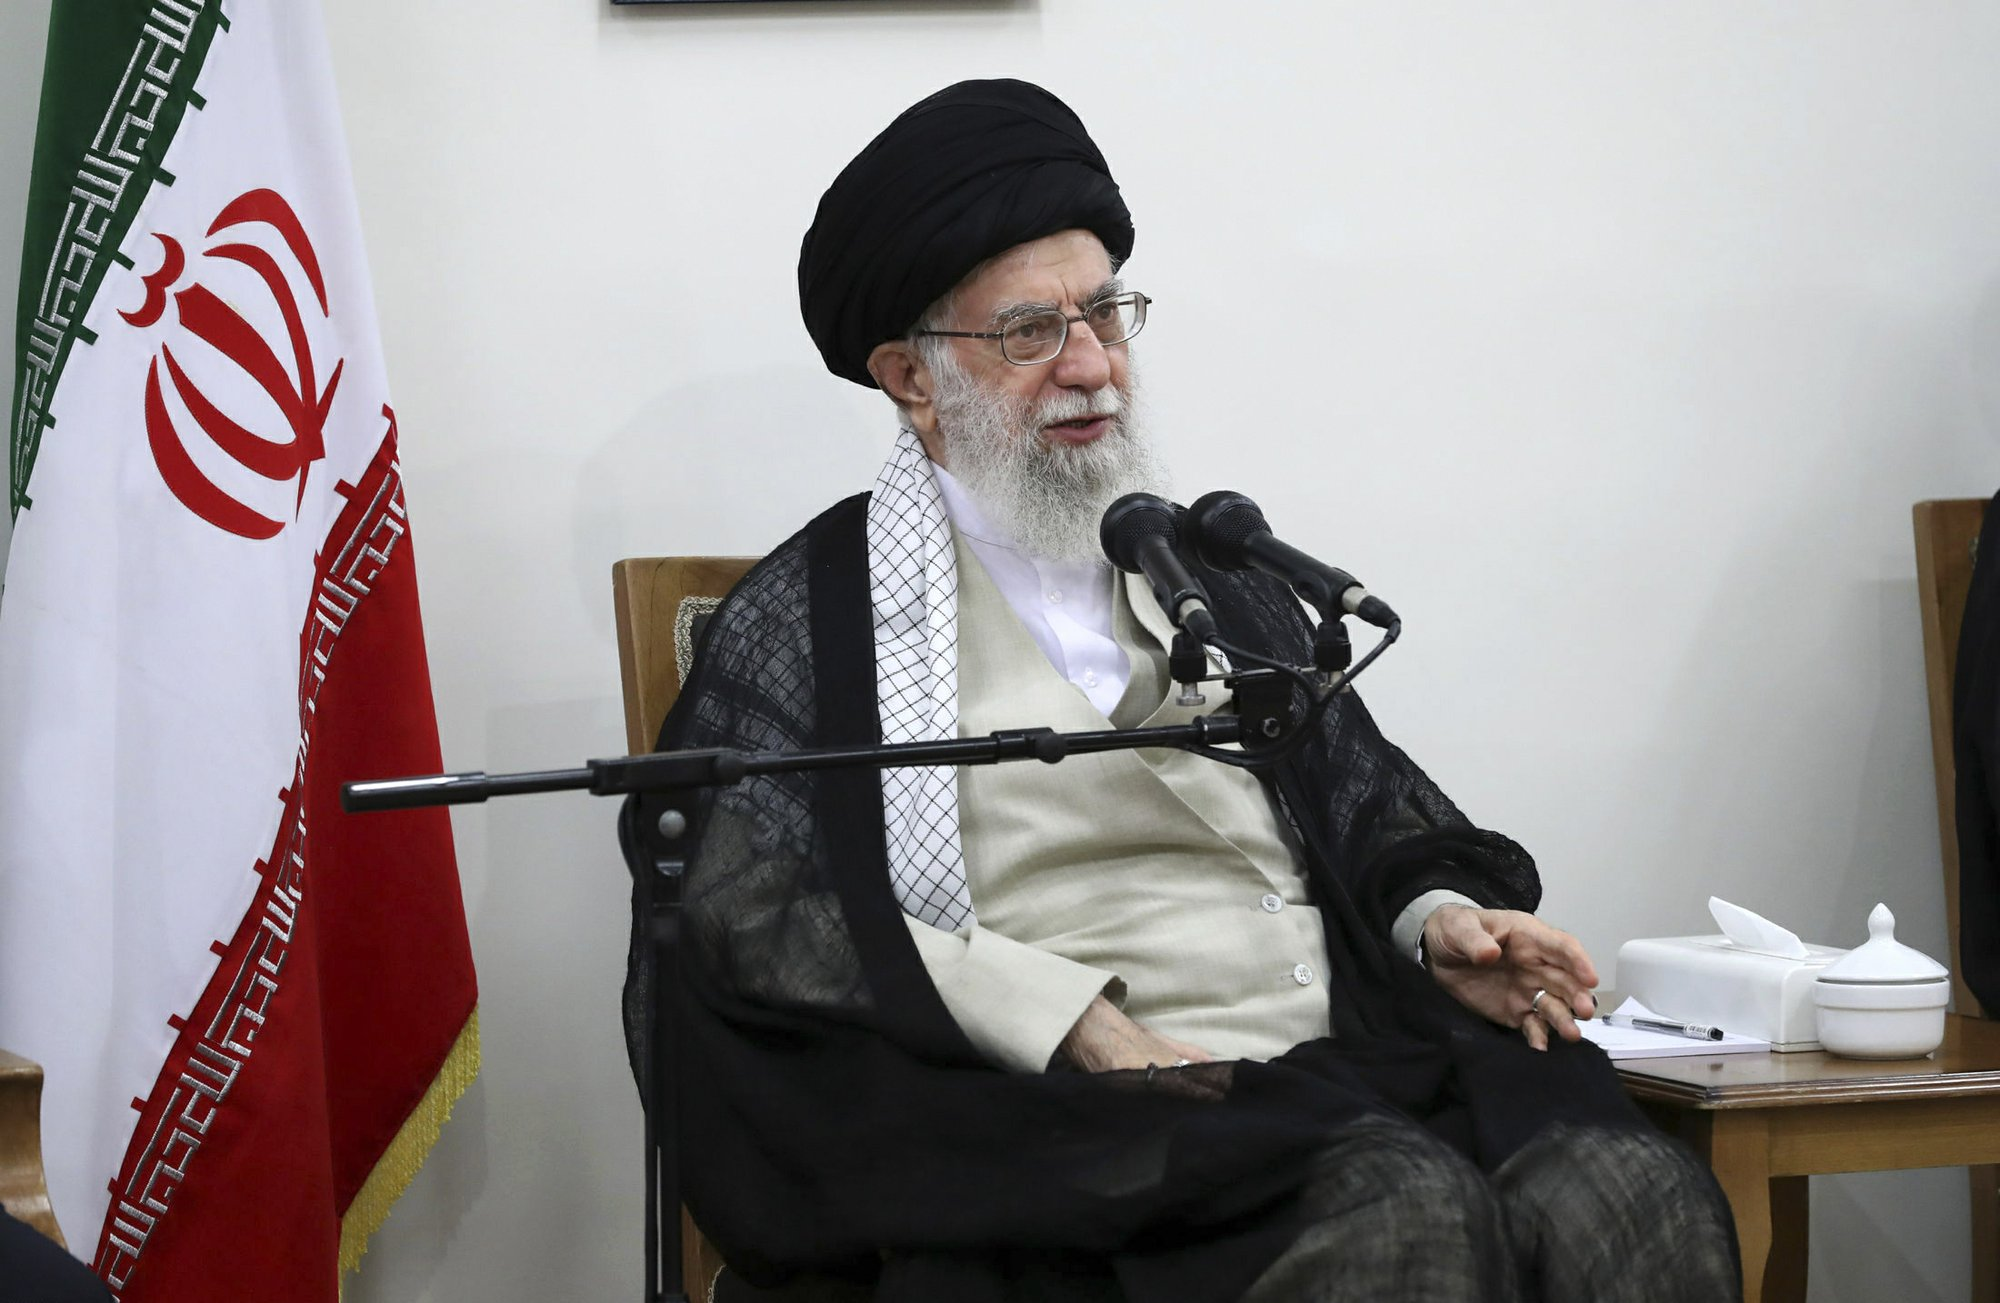 The Latest: Envoy says Iran could soon exceed uranium limits